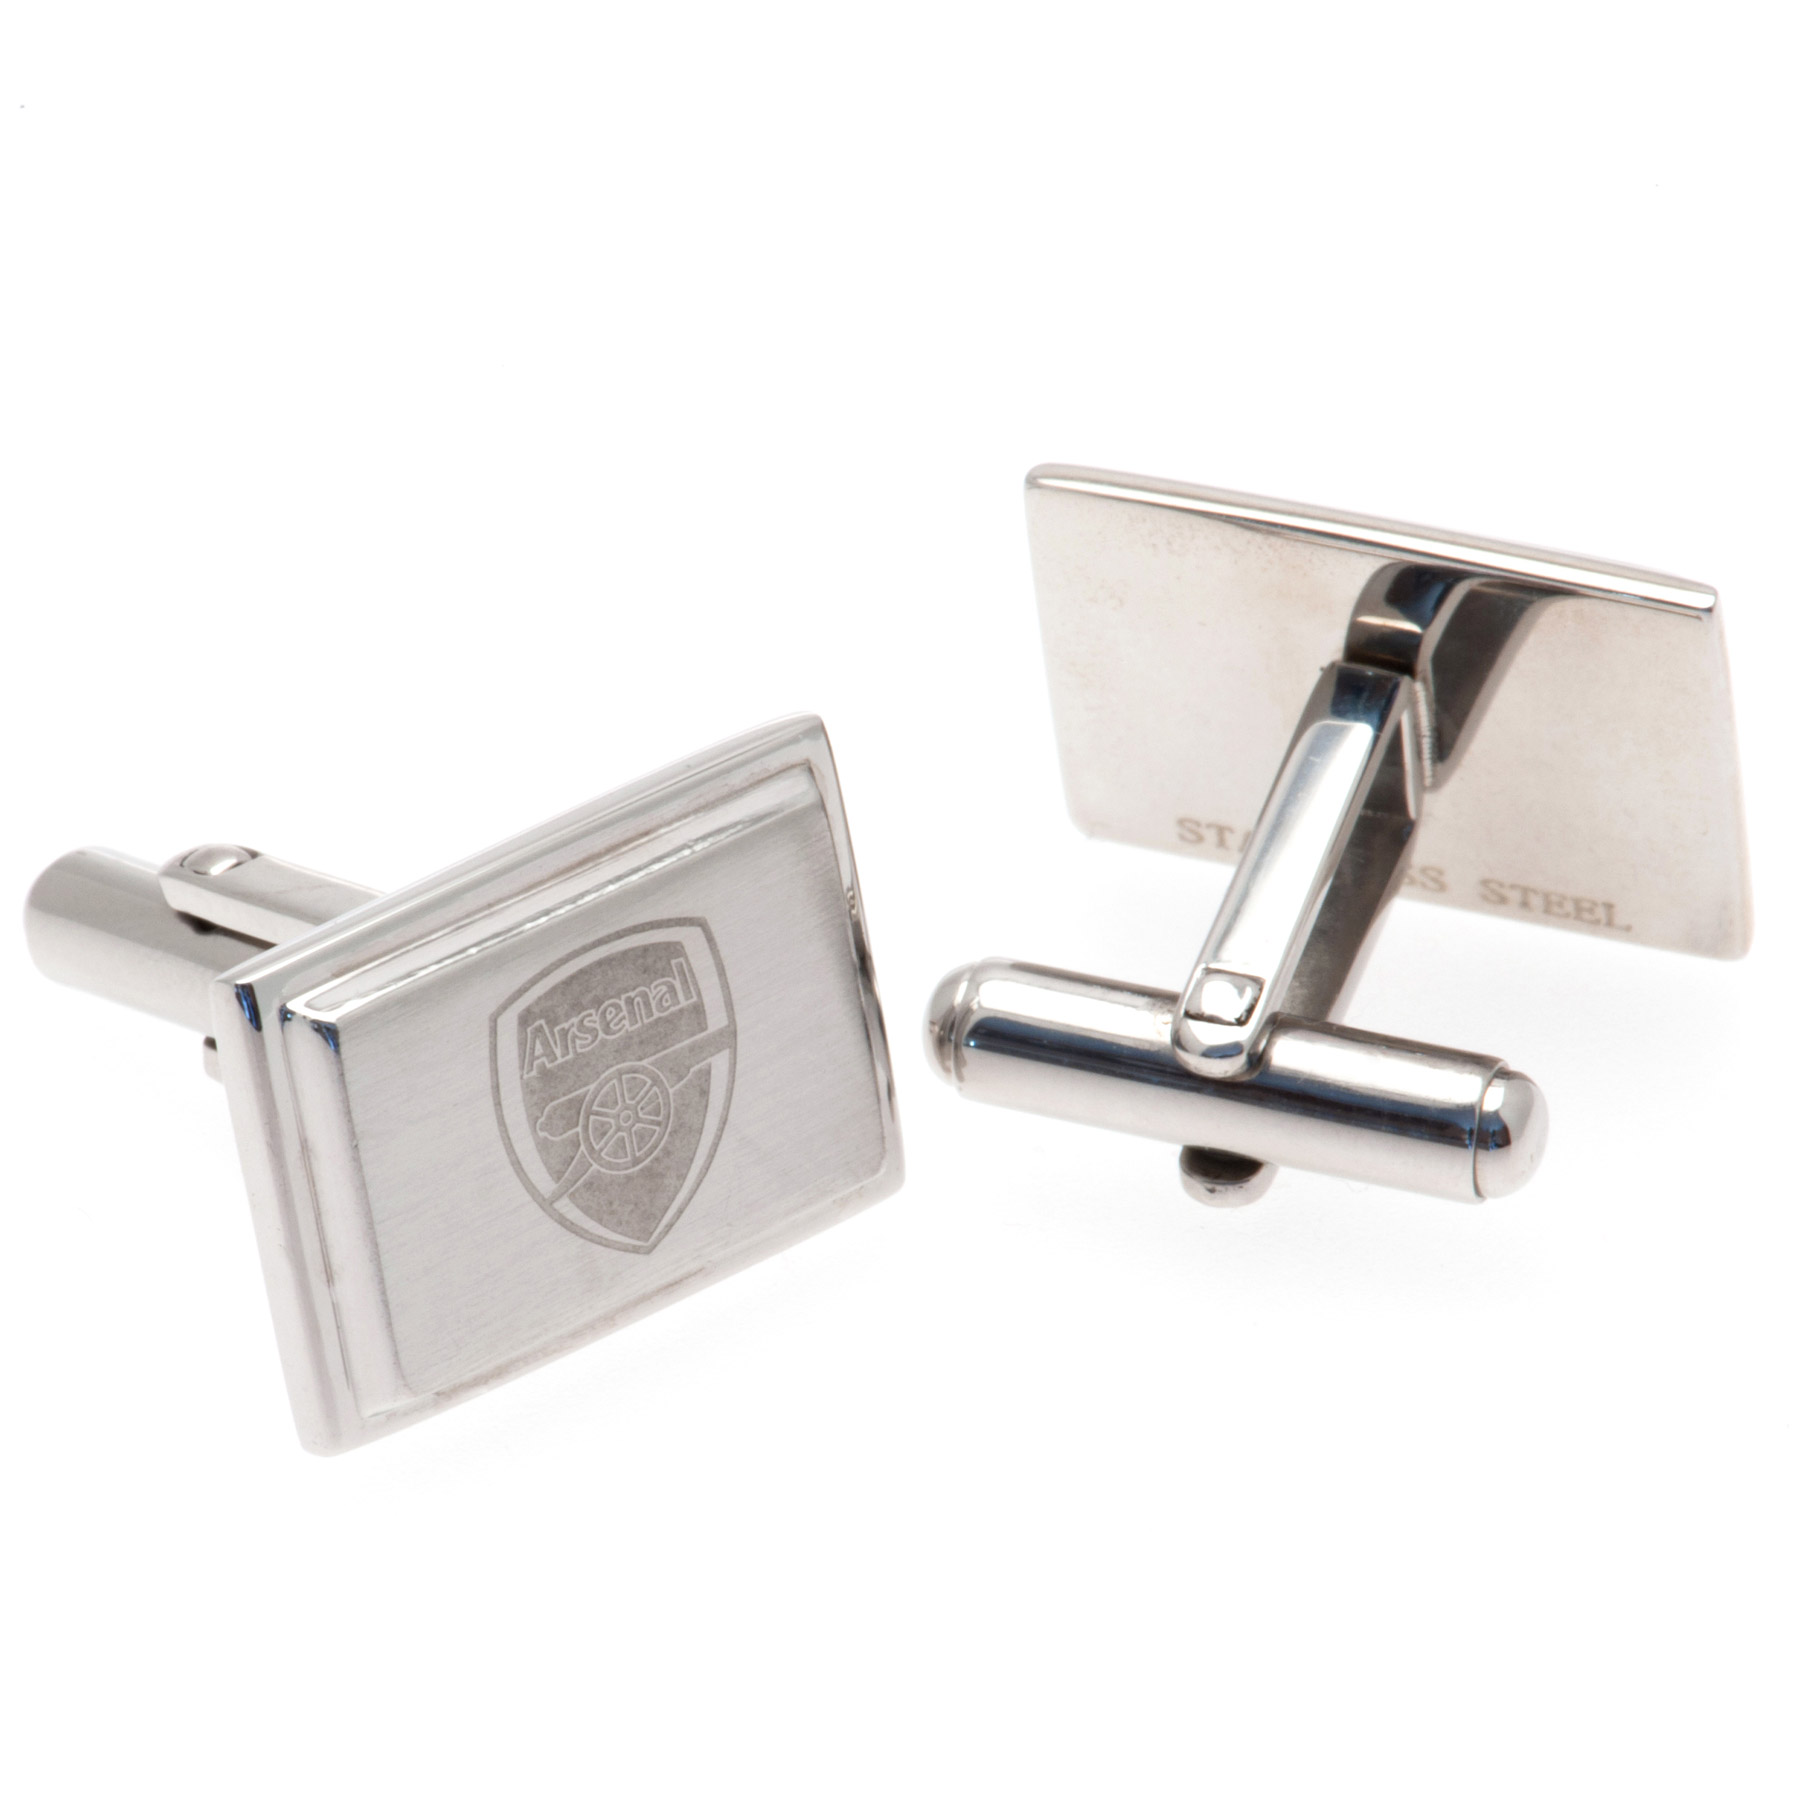 Image of Arsenal Rectangle Crest Cufflinks - Stainless Steel, N/A